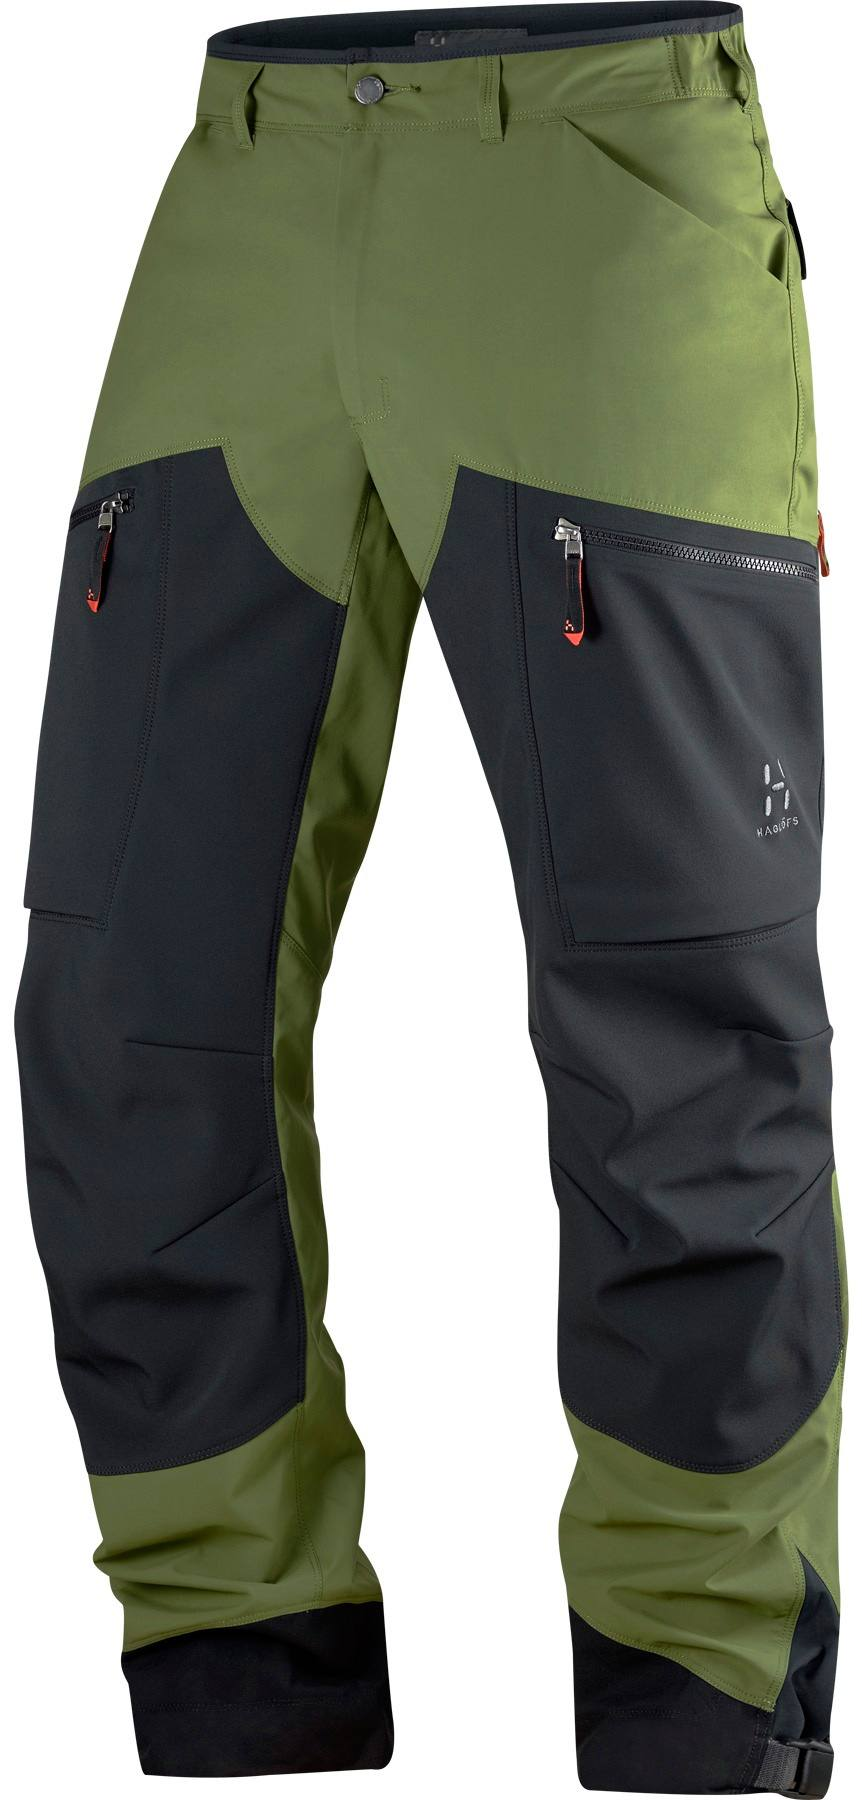 Hagl 246 Fs Rugged Mountain Pro Pant Men Scandinavian Outdoor